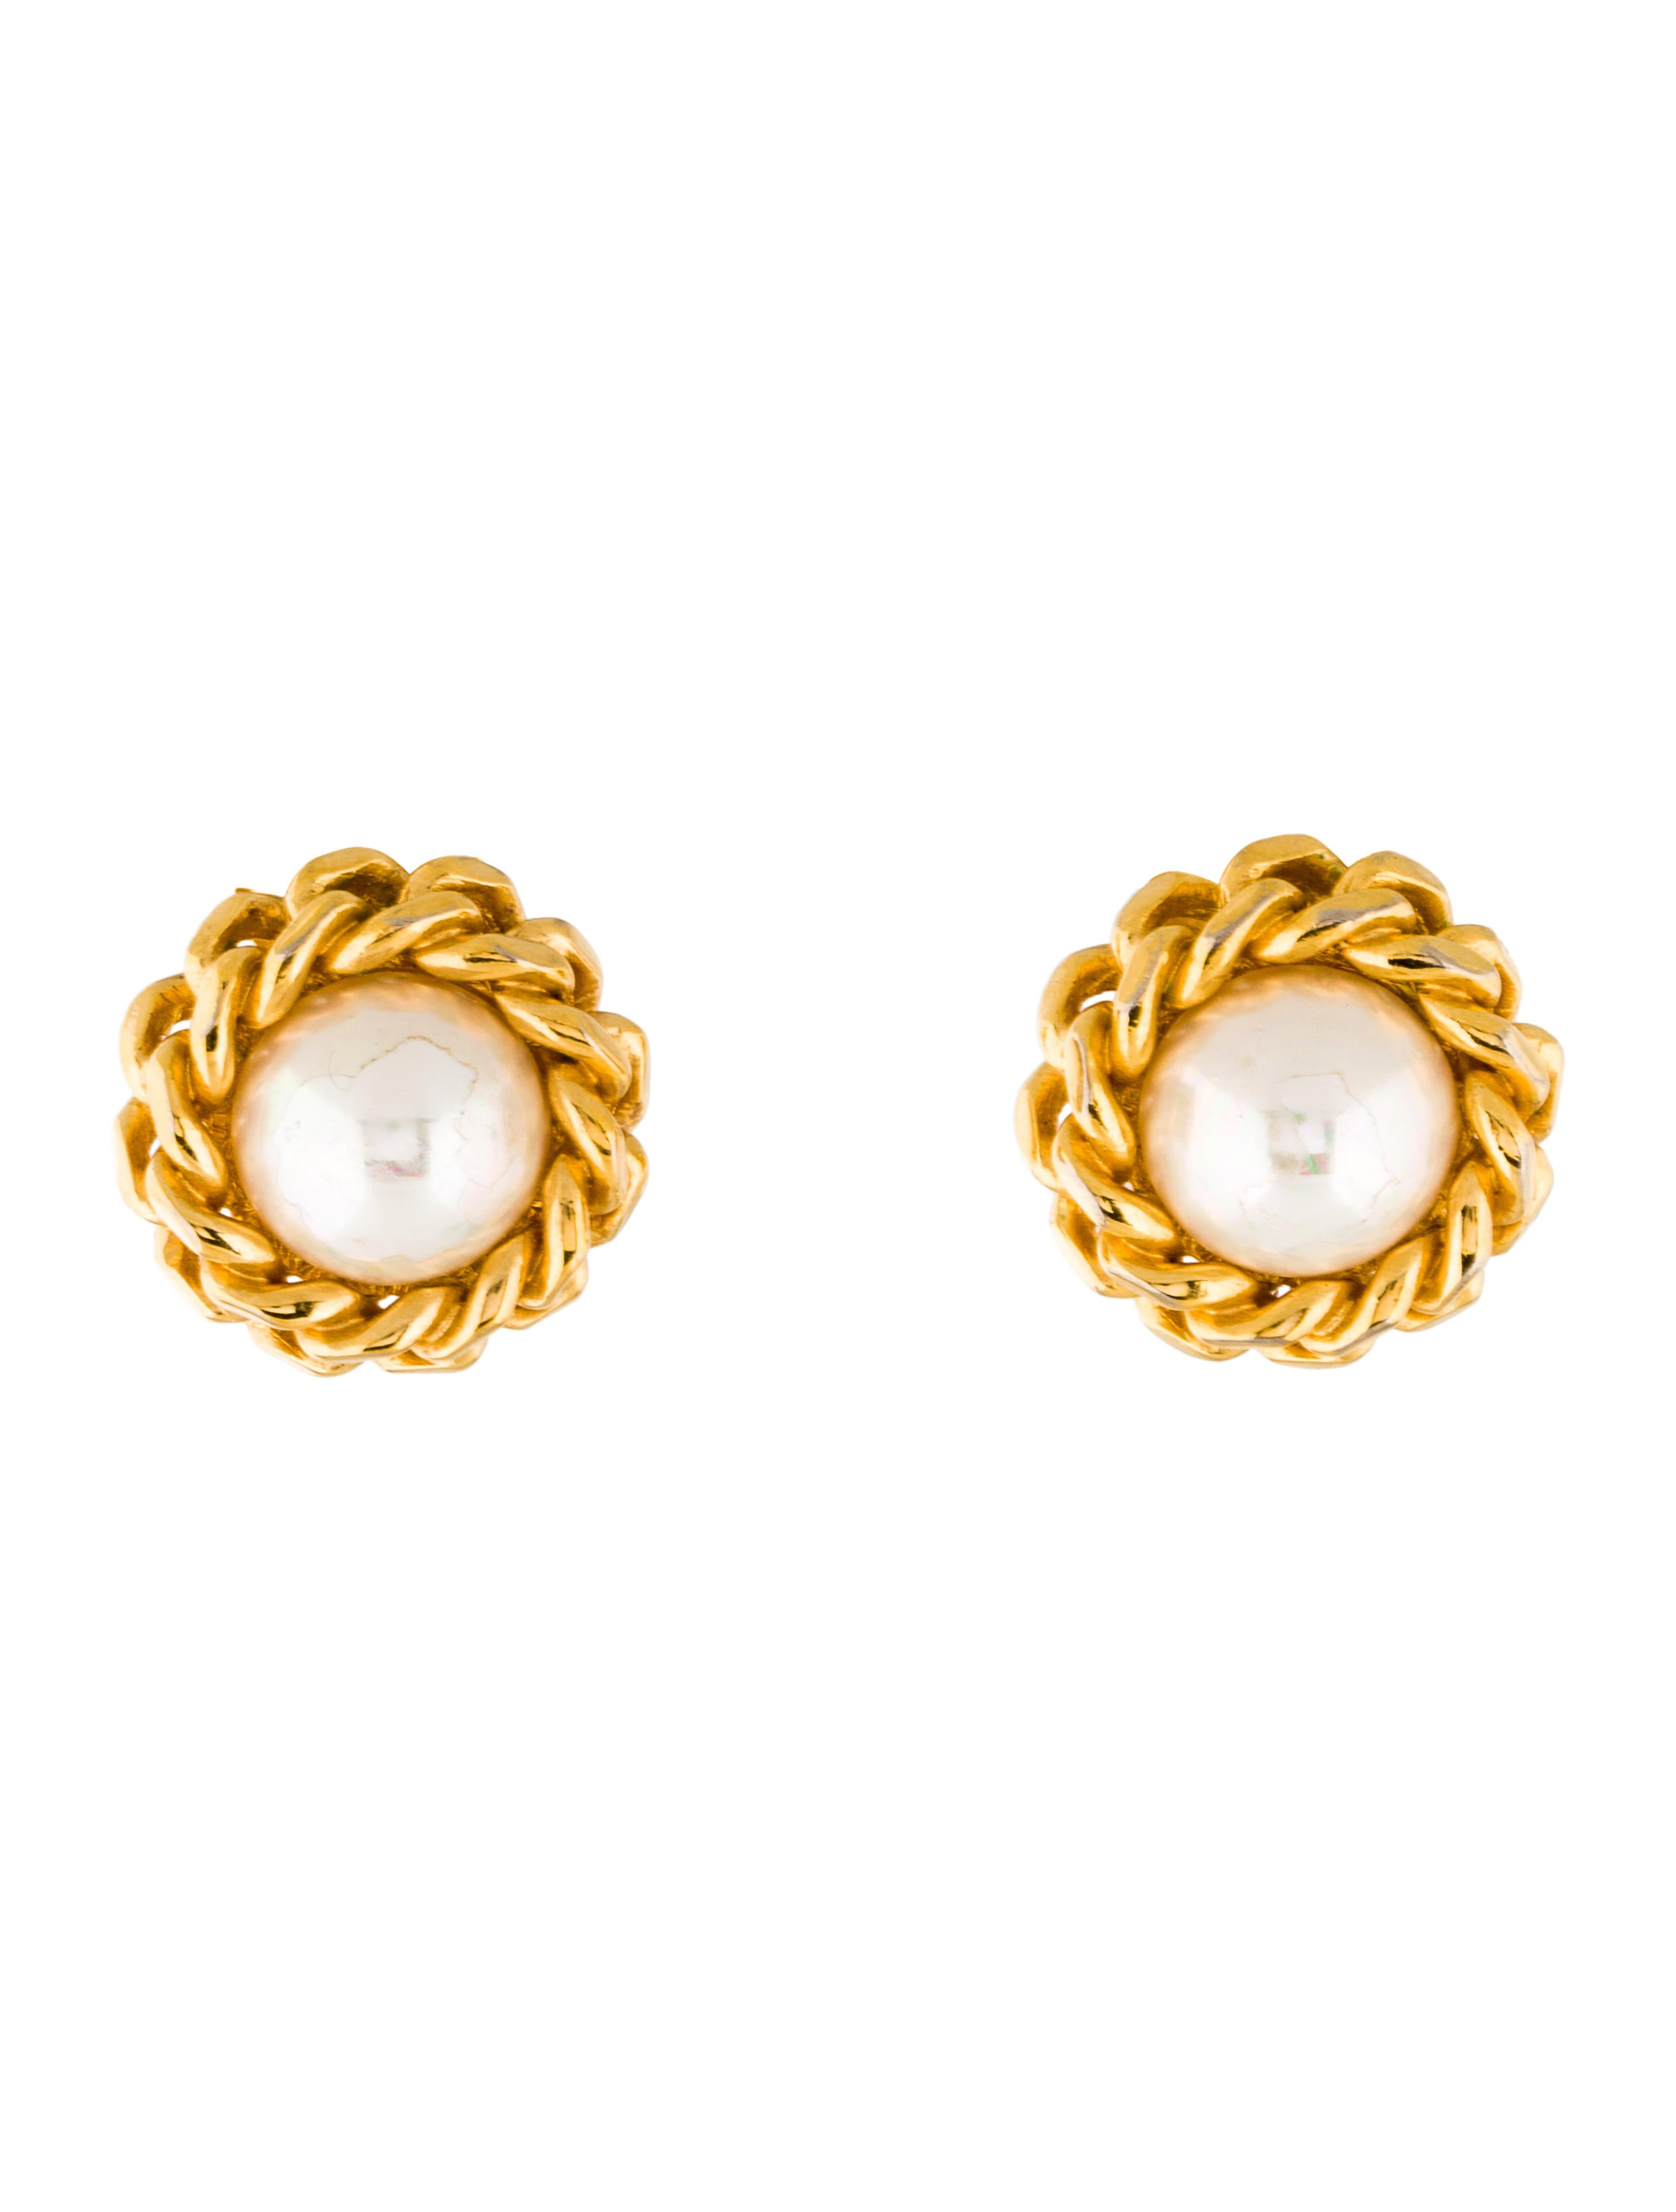 christian dior faux pearl clip on earrings earrings. Black Bedroom Furniture Sets. Home Design Ideas